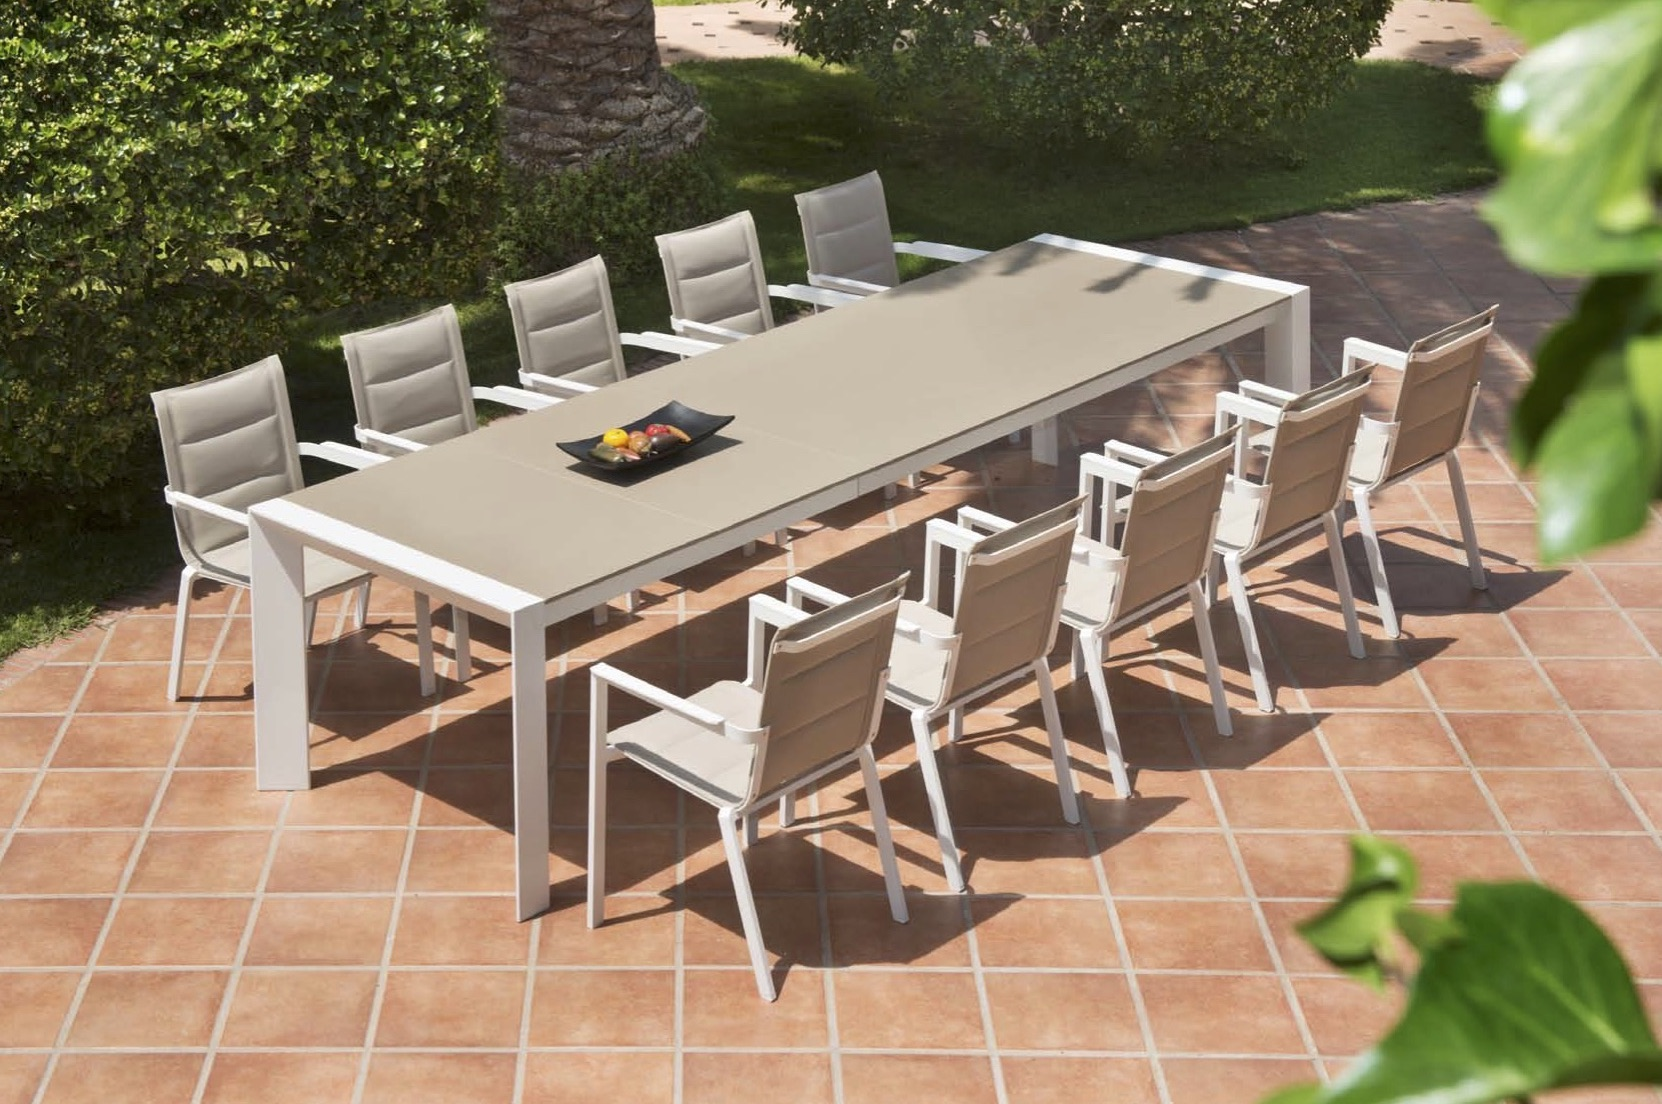 Charmant Alchemy Dining Table Modern Glass Extendable Teak All Weather Batyline  Aluminum Contract Hospitality Outdoor Furniture